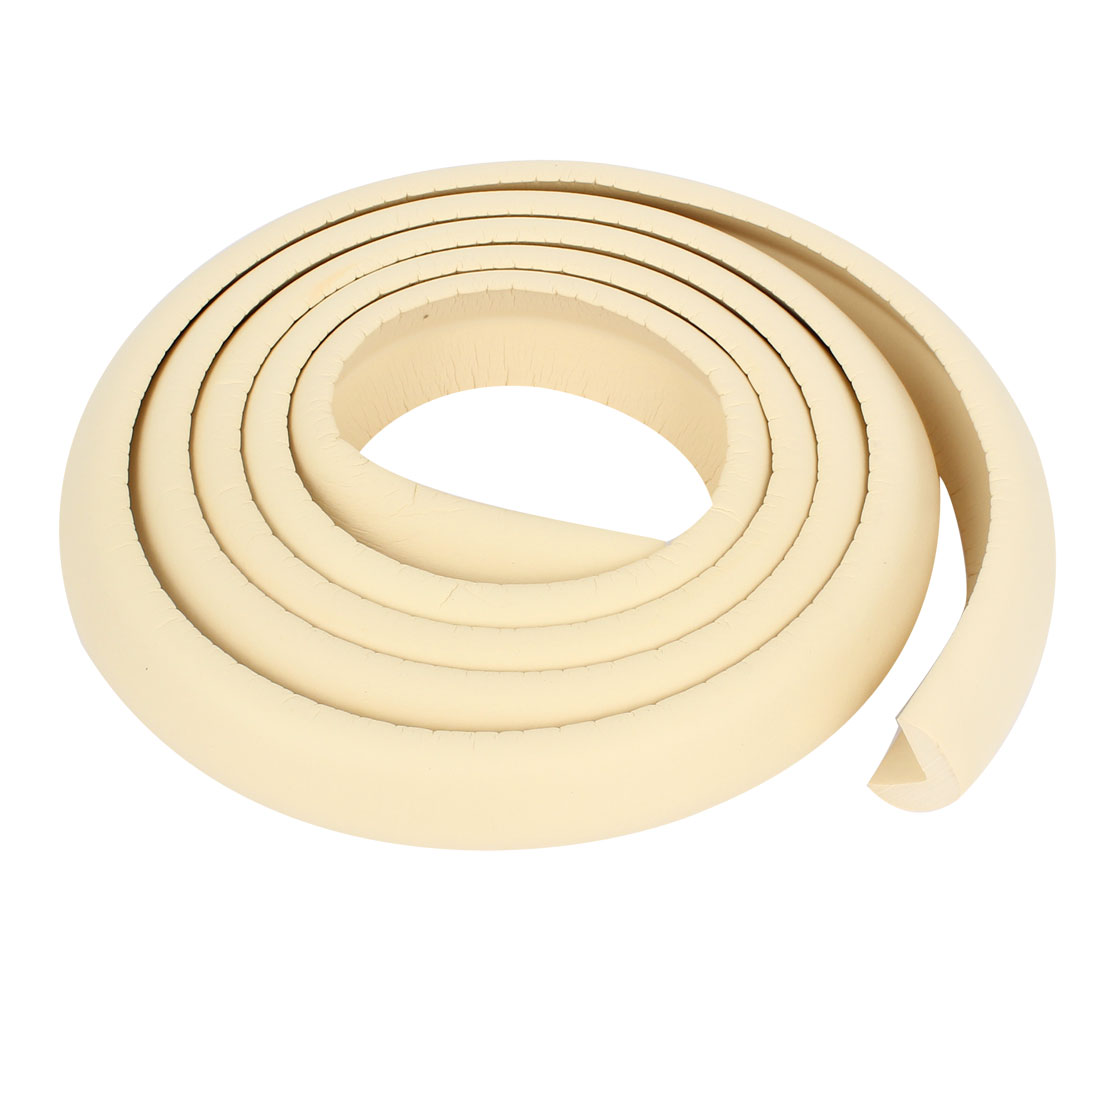 2m Long 3cm Width Off White Safety Edge Protector Table Corner Guard Strip